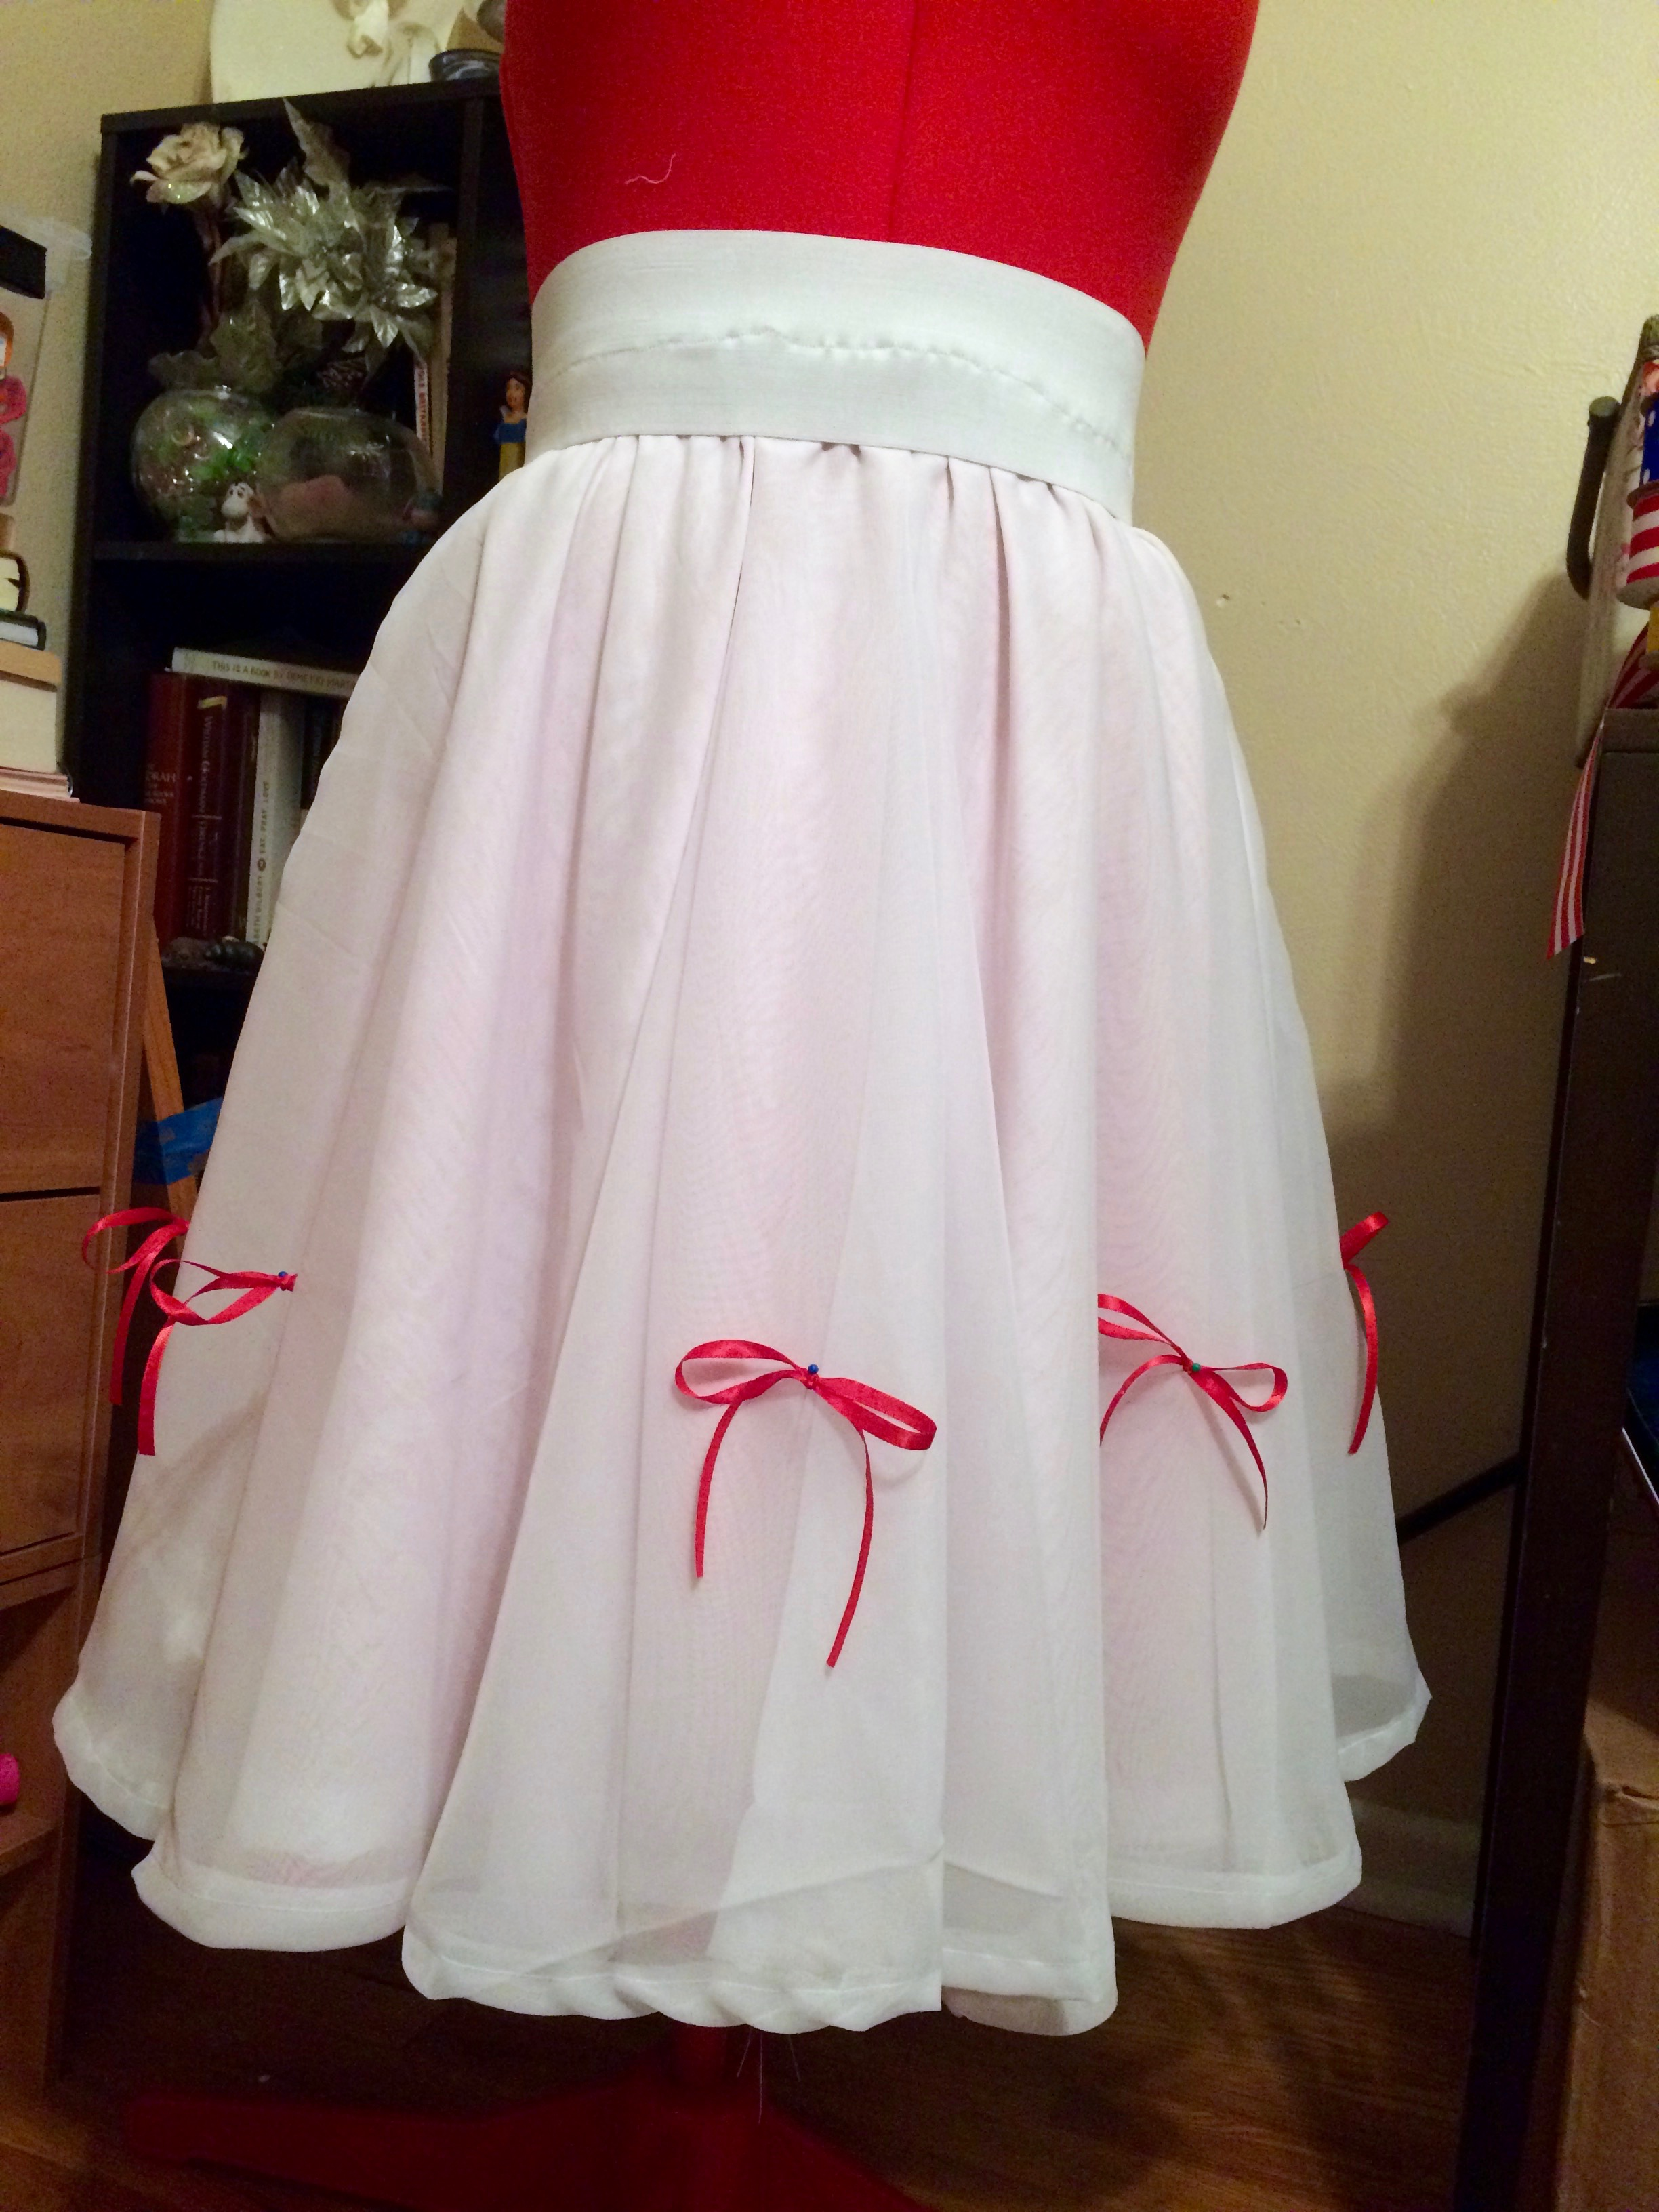 All the bows pinned in place, and the skirt is hemmed. The waist doesn't look fantastic, but won't be visible.